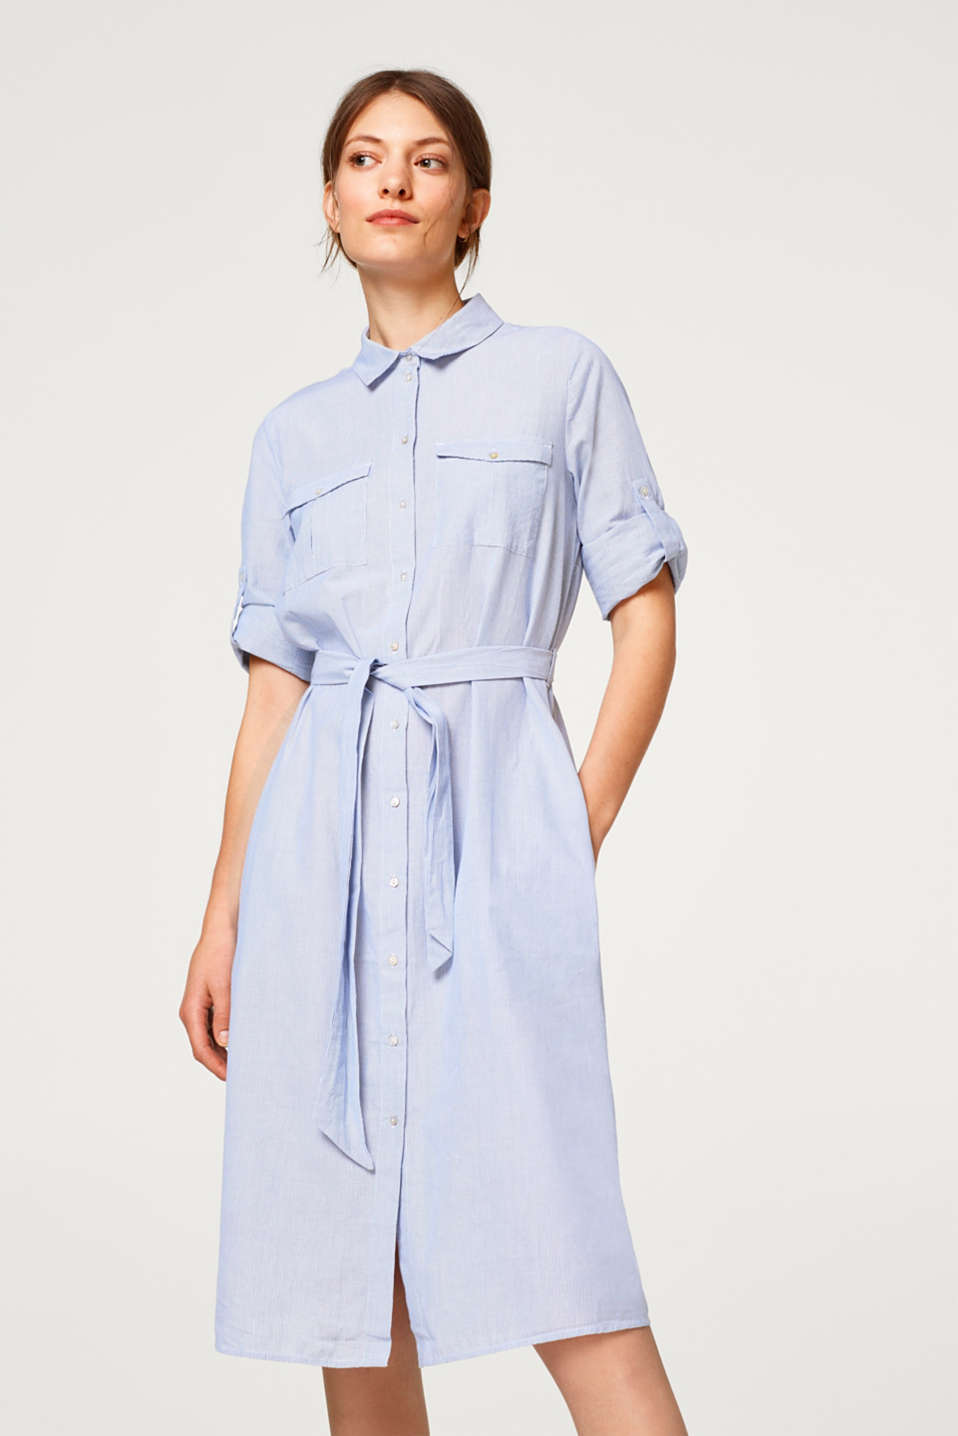 edc - Shirt dress made of 100% cotton